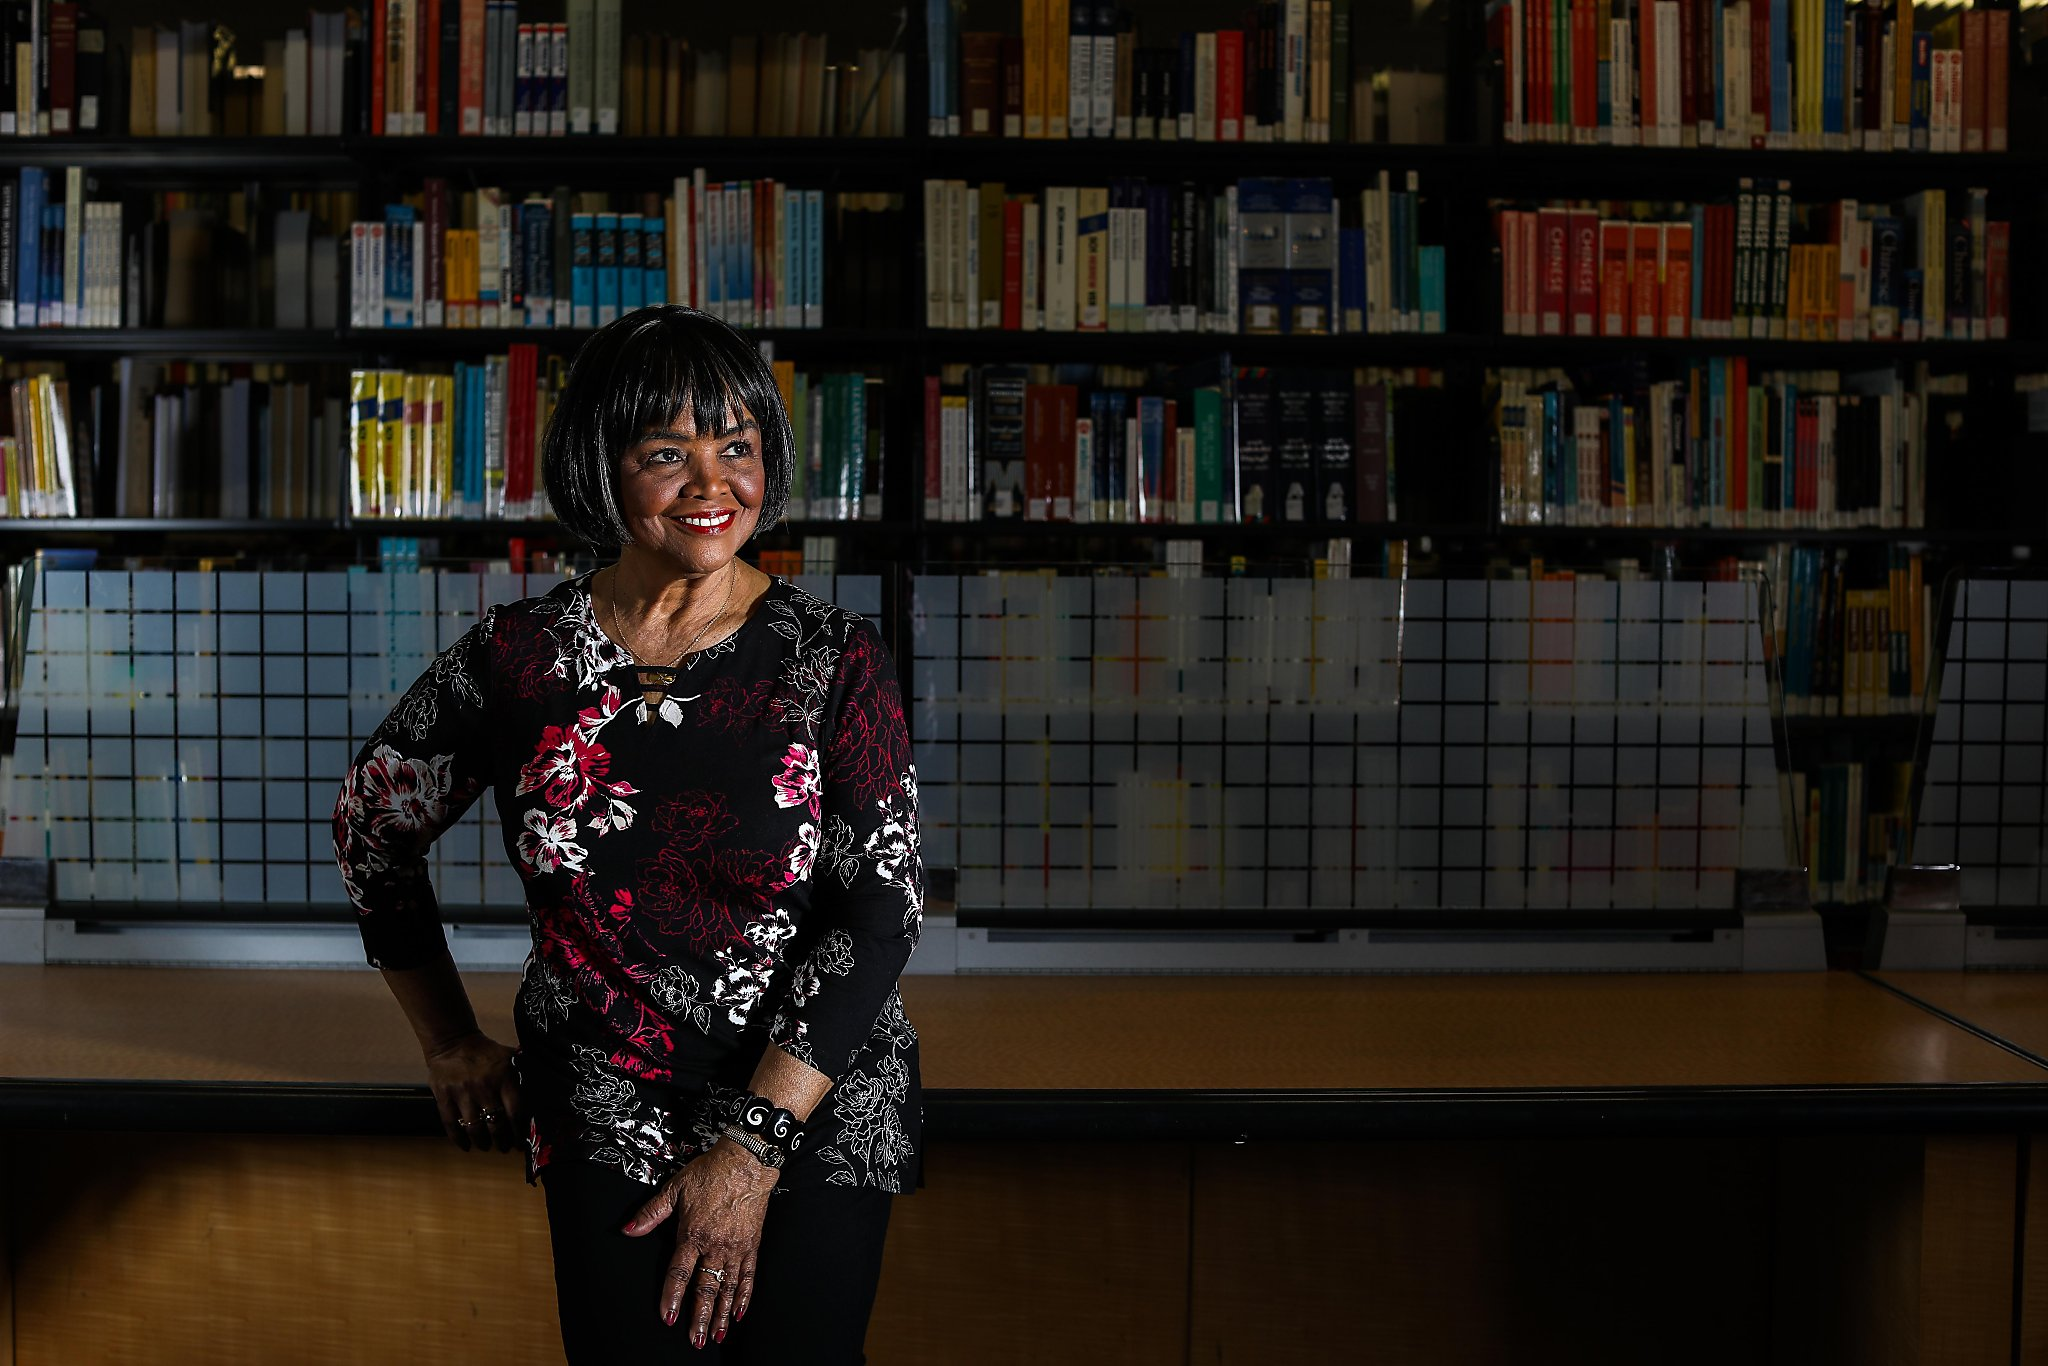 Barbara Rodgers saw no Black journalists growing up, but she became an icon